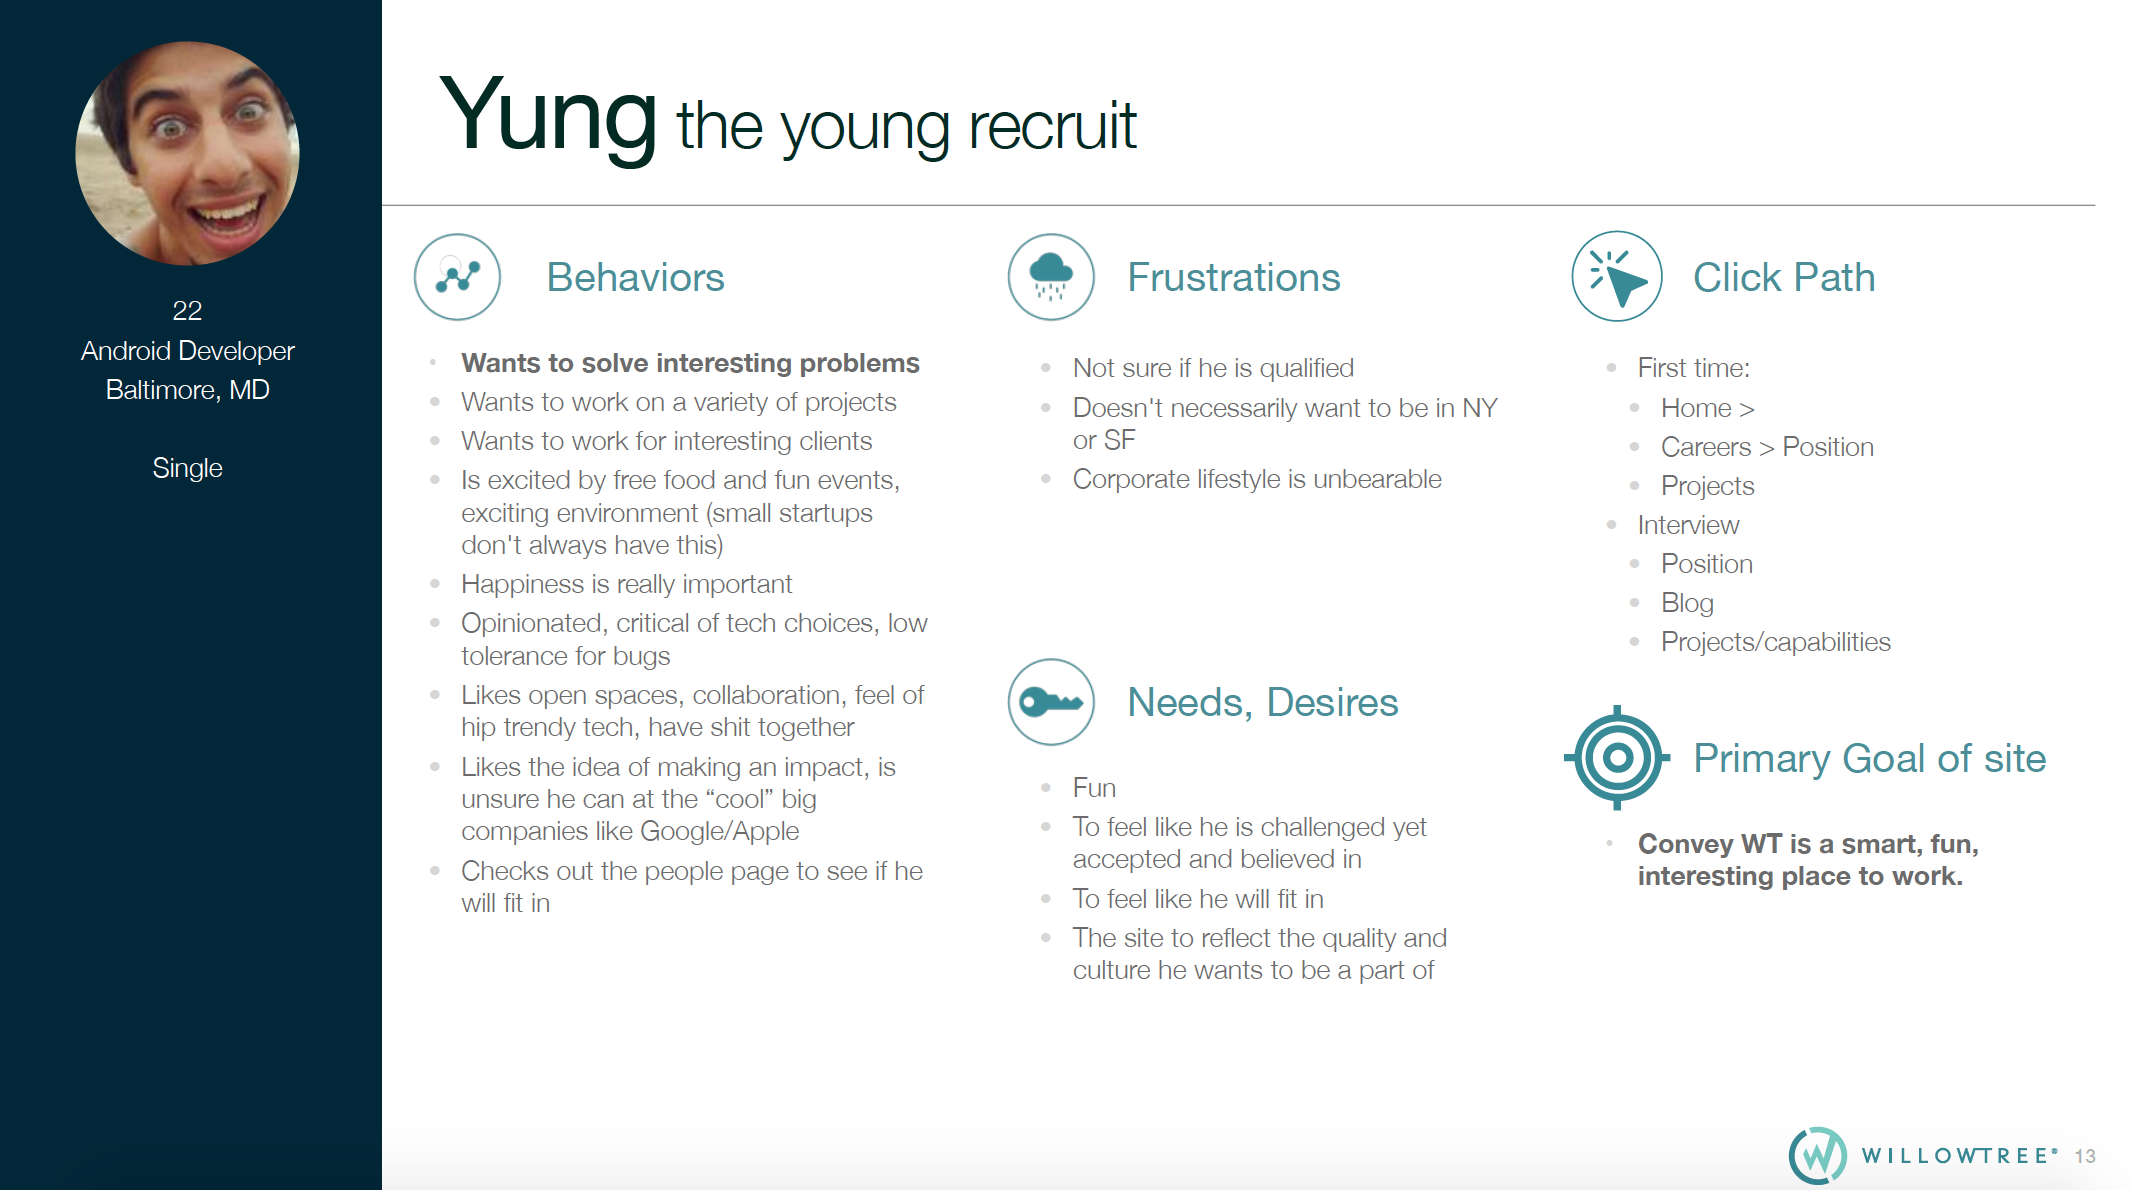 website younger WT recruit